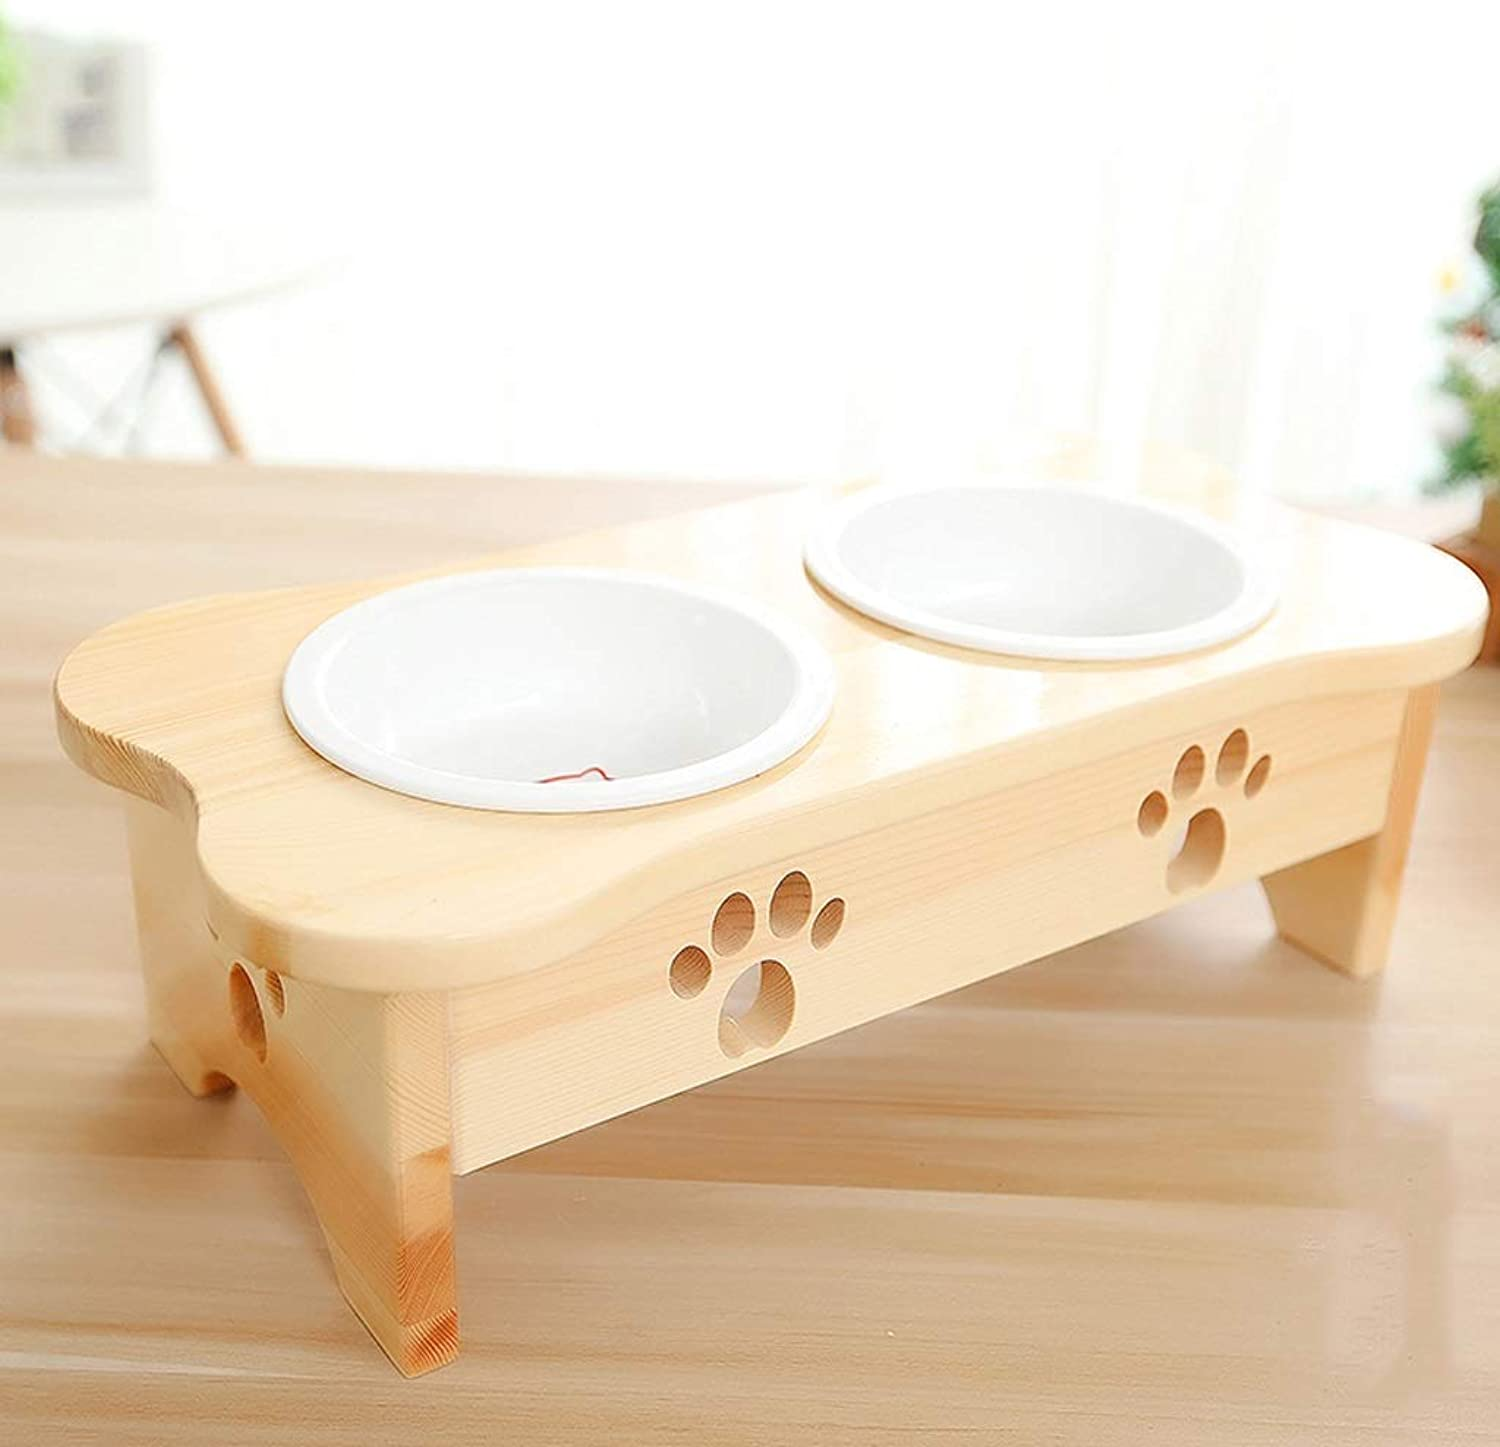 Luxury Pet Bowl, Dog Bowl Cat Bowl Creative Solid Wood Dining Table Ceramic Tilt Double Bowl Cat Food Dog Food Bowl Primary color Pet Supplies Exquisite Cute blueee Cat Garfield Shorthair Cat